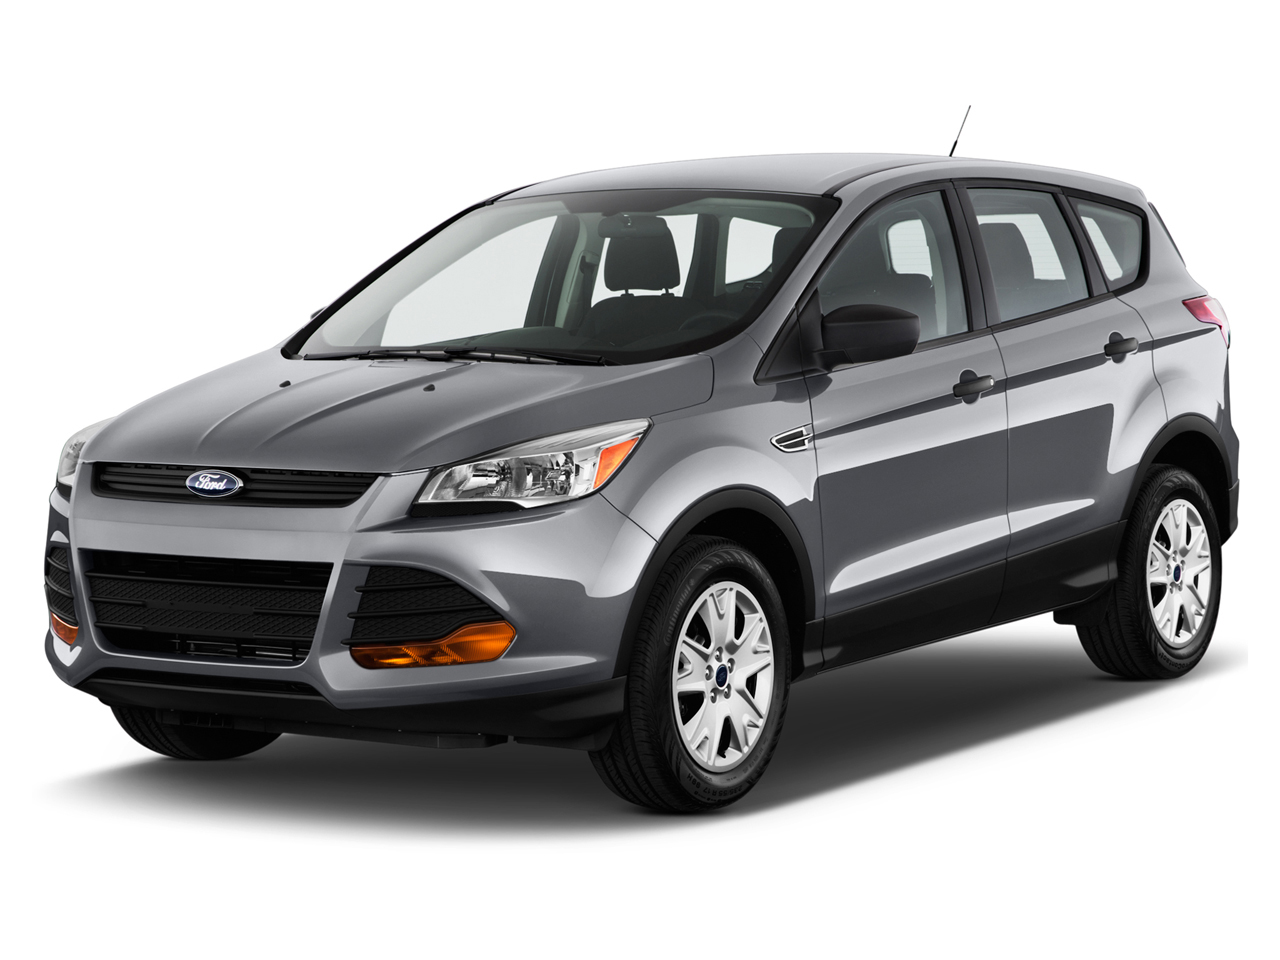 2013 ford escape fwd 4 door s angular front exterior view 100396276 h